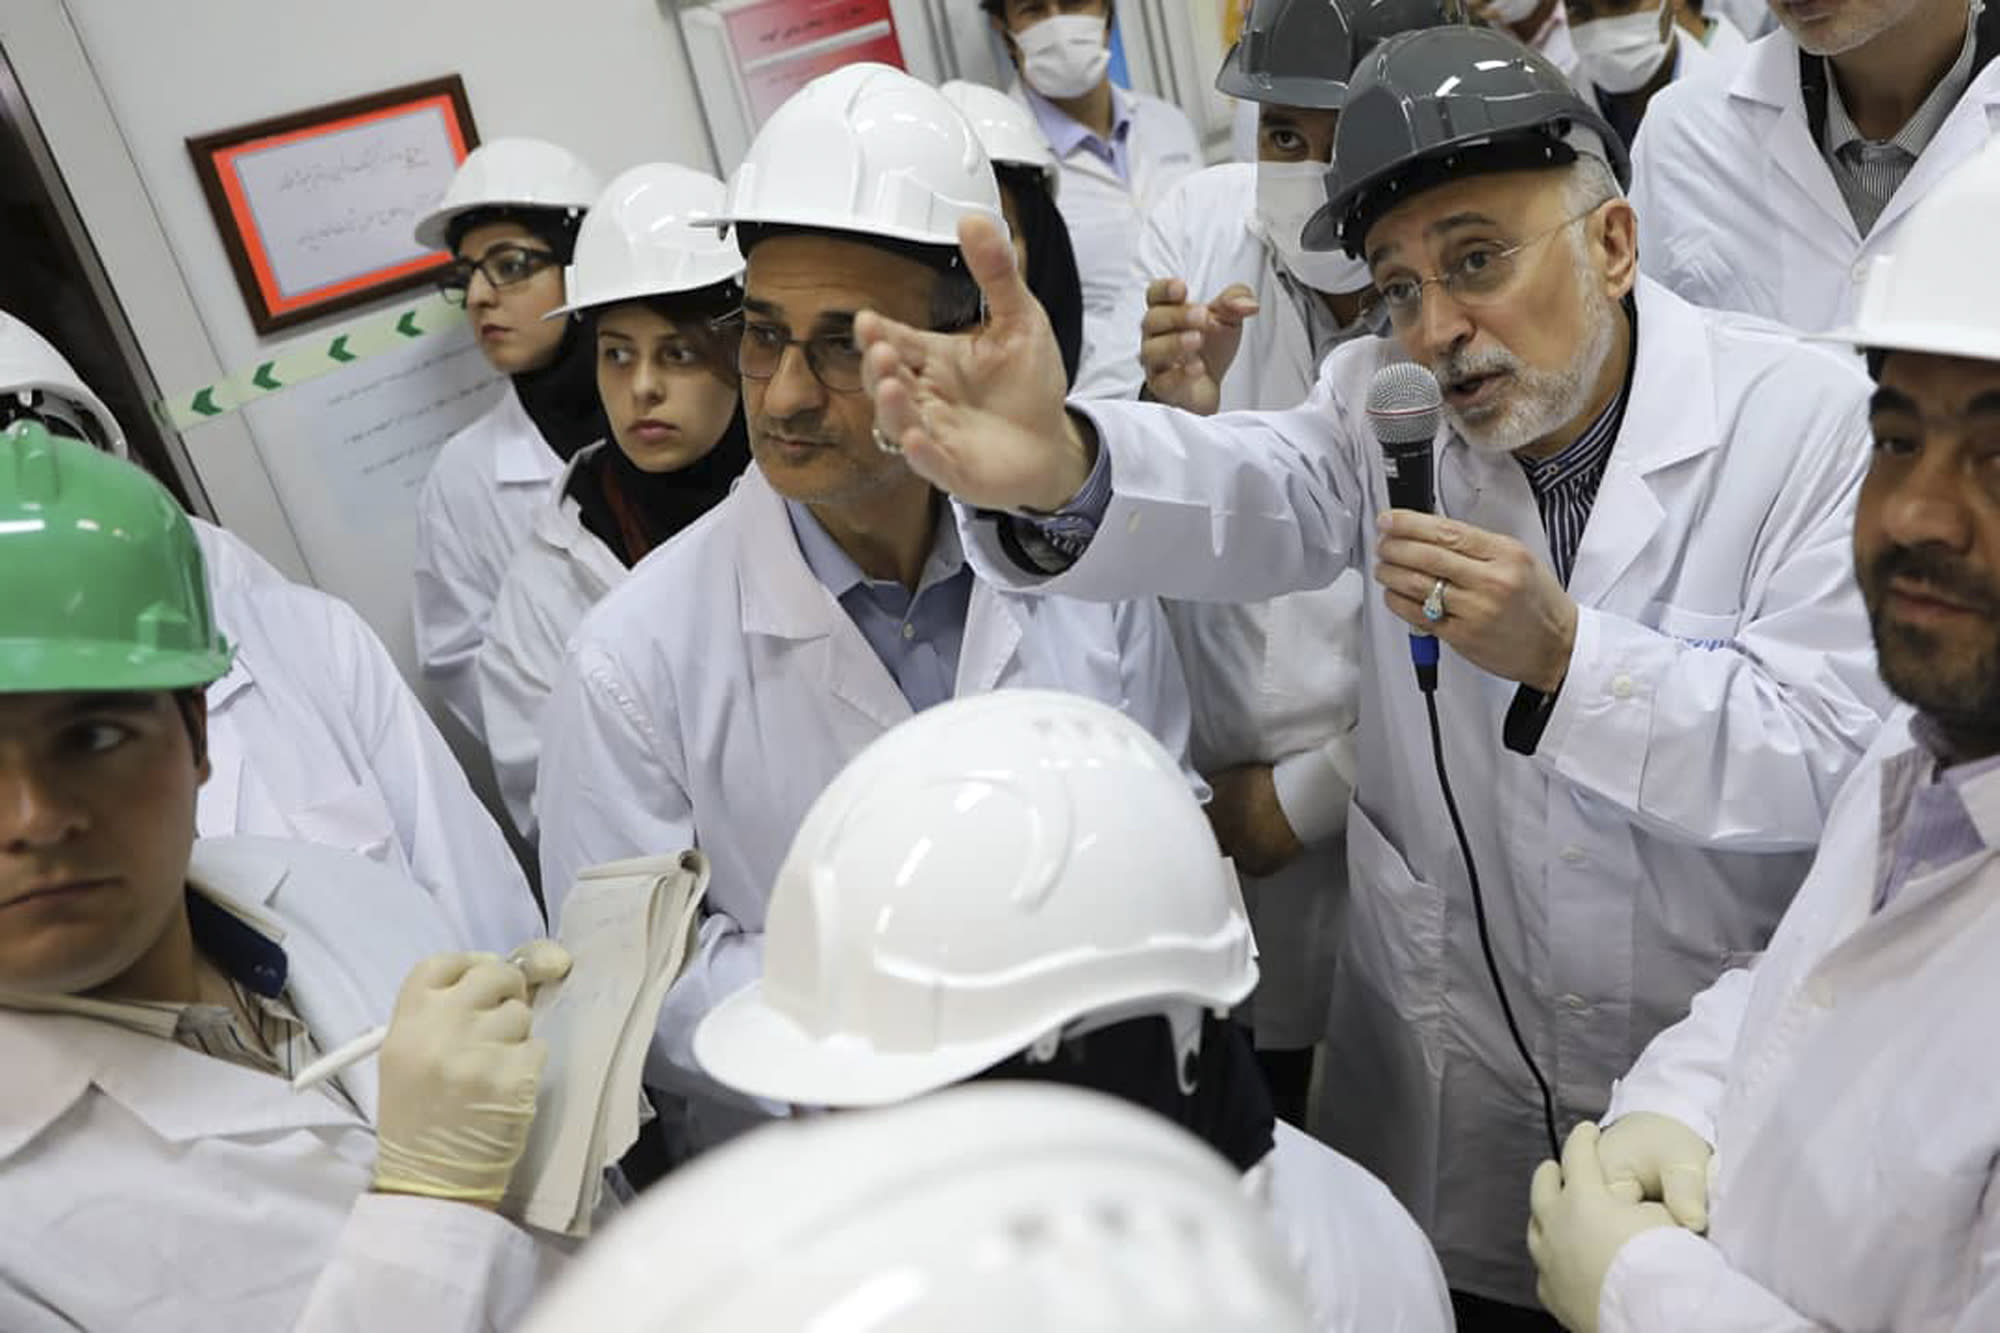 """FILE - In this file photo released Nov. 4, 2019 by the Atomic Energy Organization of Iran, Ali Akbar Salehi, head of the organization, speaks with media while visiting Natanz enrichment facility, in central Iran. The landmark 2015 deal between Tehran and world powers meant to prevent Iran from obtaining nuclear weapons has been teetering on the edge of collapse since the U.S. pulled unilaterally in 2018. The EU said Wednesday, Jan. 8, 2020, that it will """"spare no effort"""" to keep the deal alive, but with tensions between the U.S. escalating into open hostilities it's seeming increasingly unlikely that will be possible. (Atomic Energy Organization of Iran via AP, File)"""